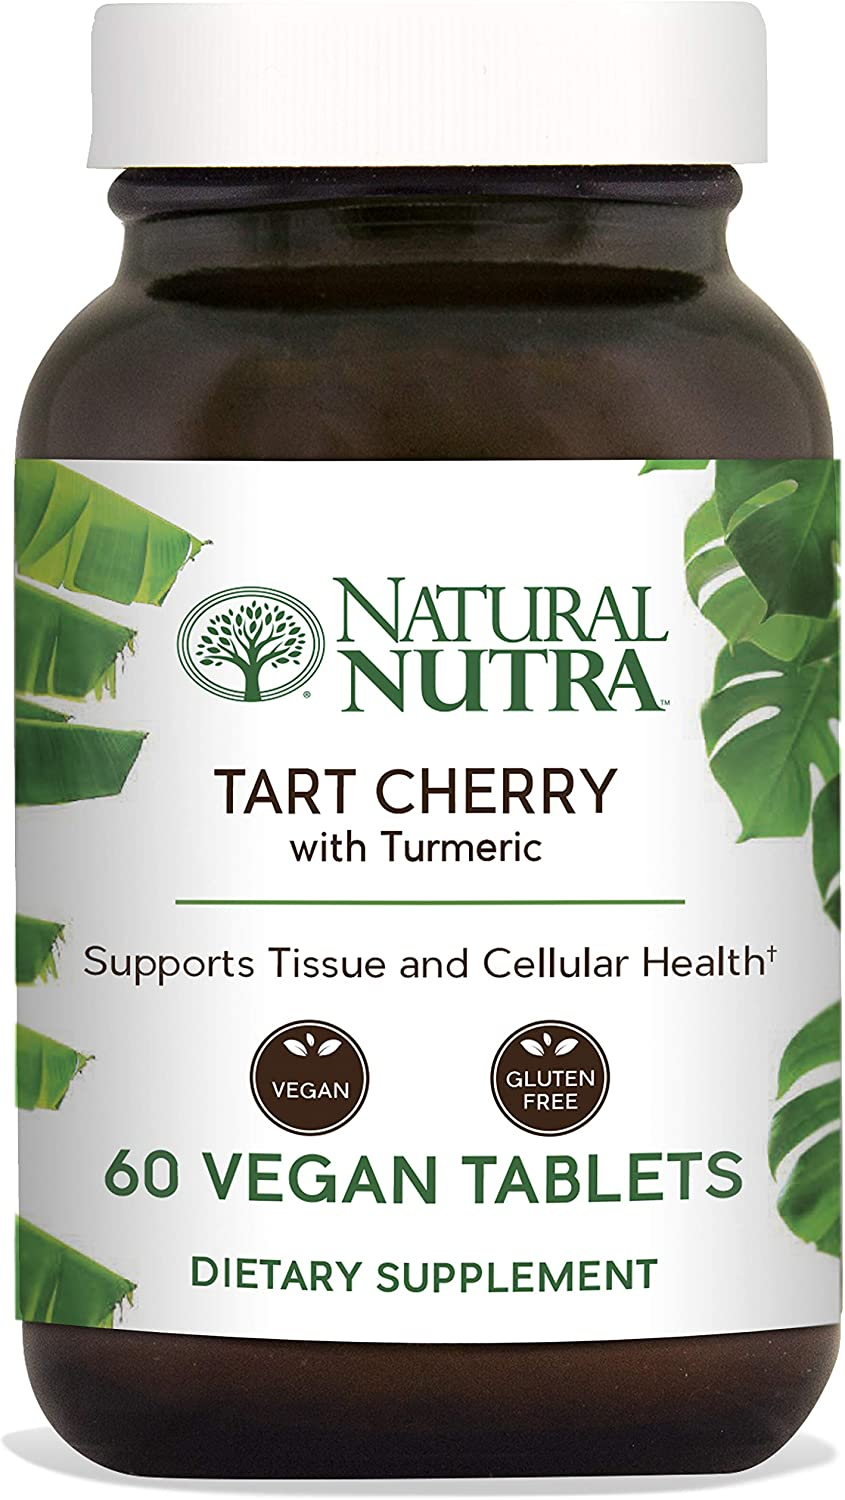 Natural Nutra Tart Cherry Extract with Turmeric Curcumin, Antioxidant Supplement for Inflammation Relief, Joint Health and Gout Treatment, 60 Vegan Tablets